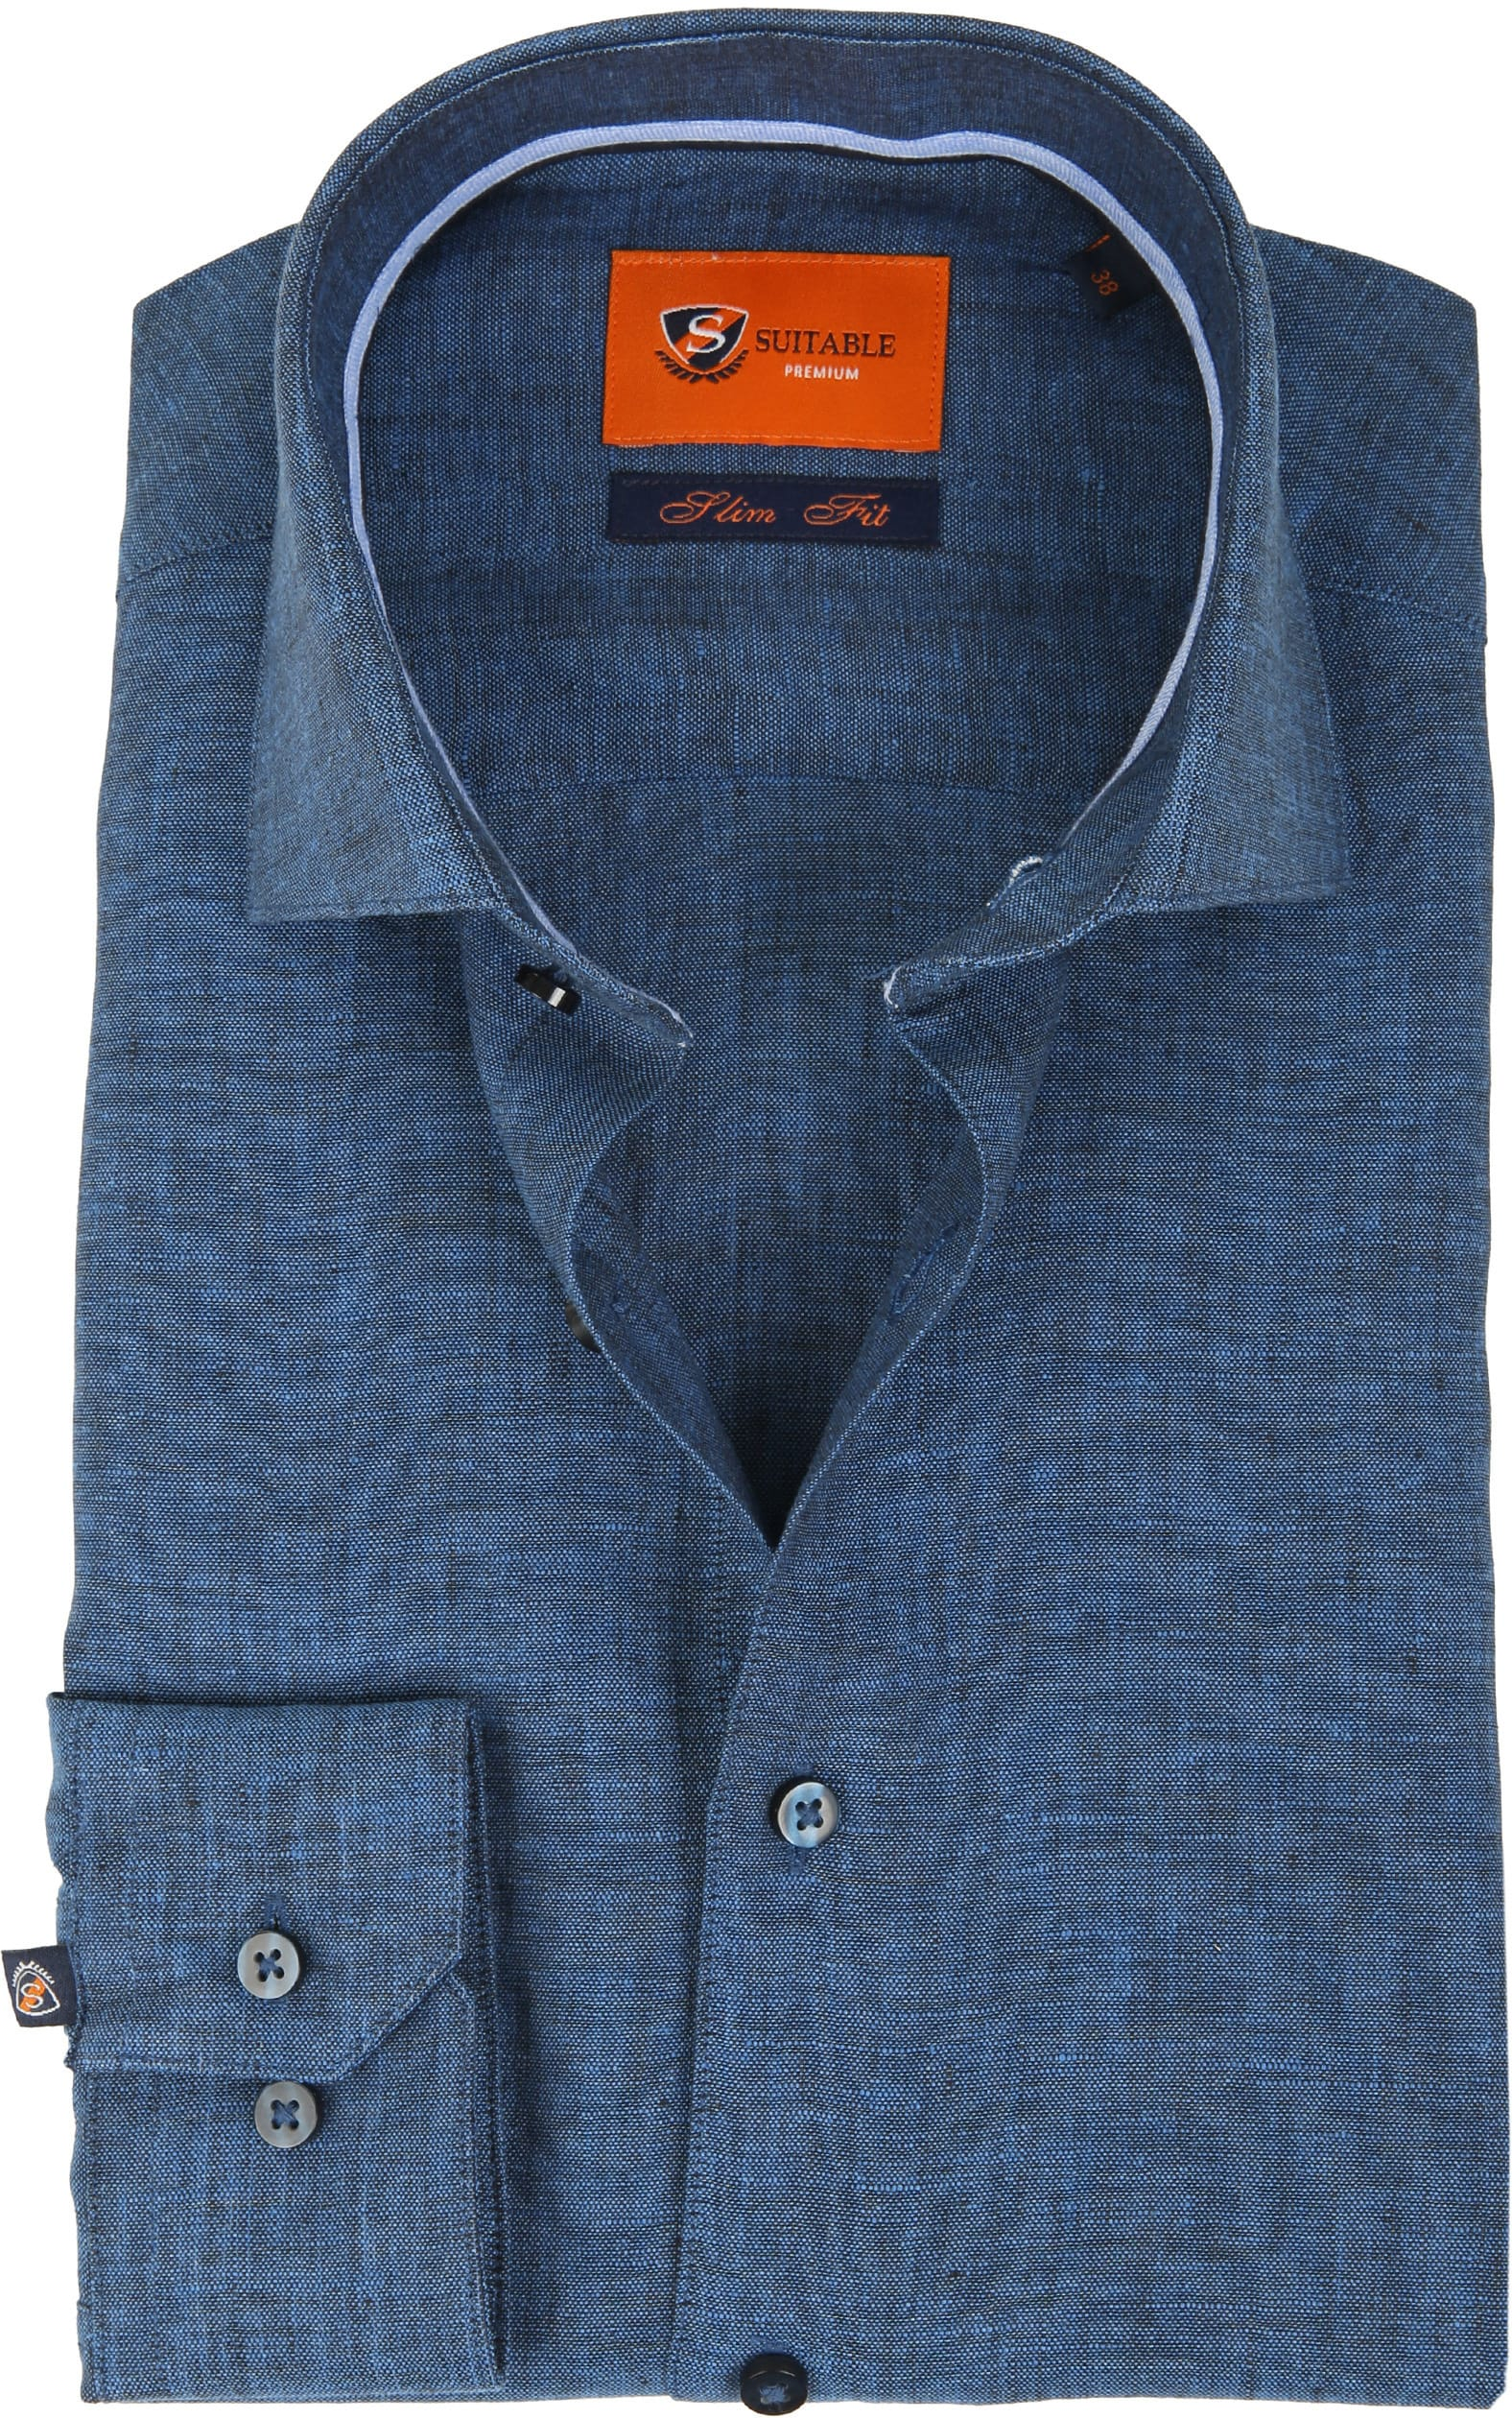 Suitable Shirt Linen Navy D81-11 foto 0